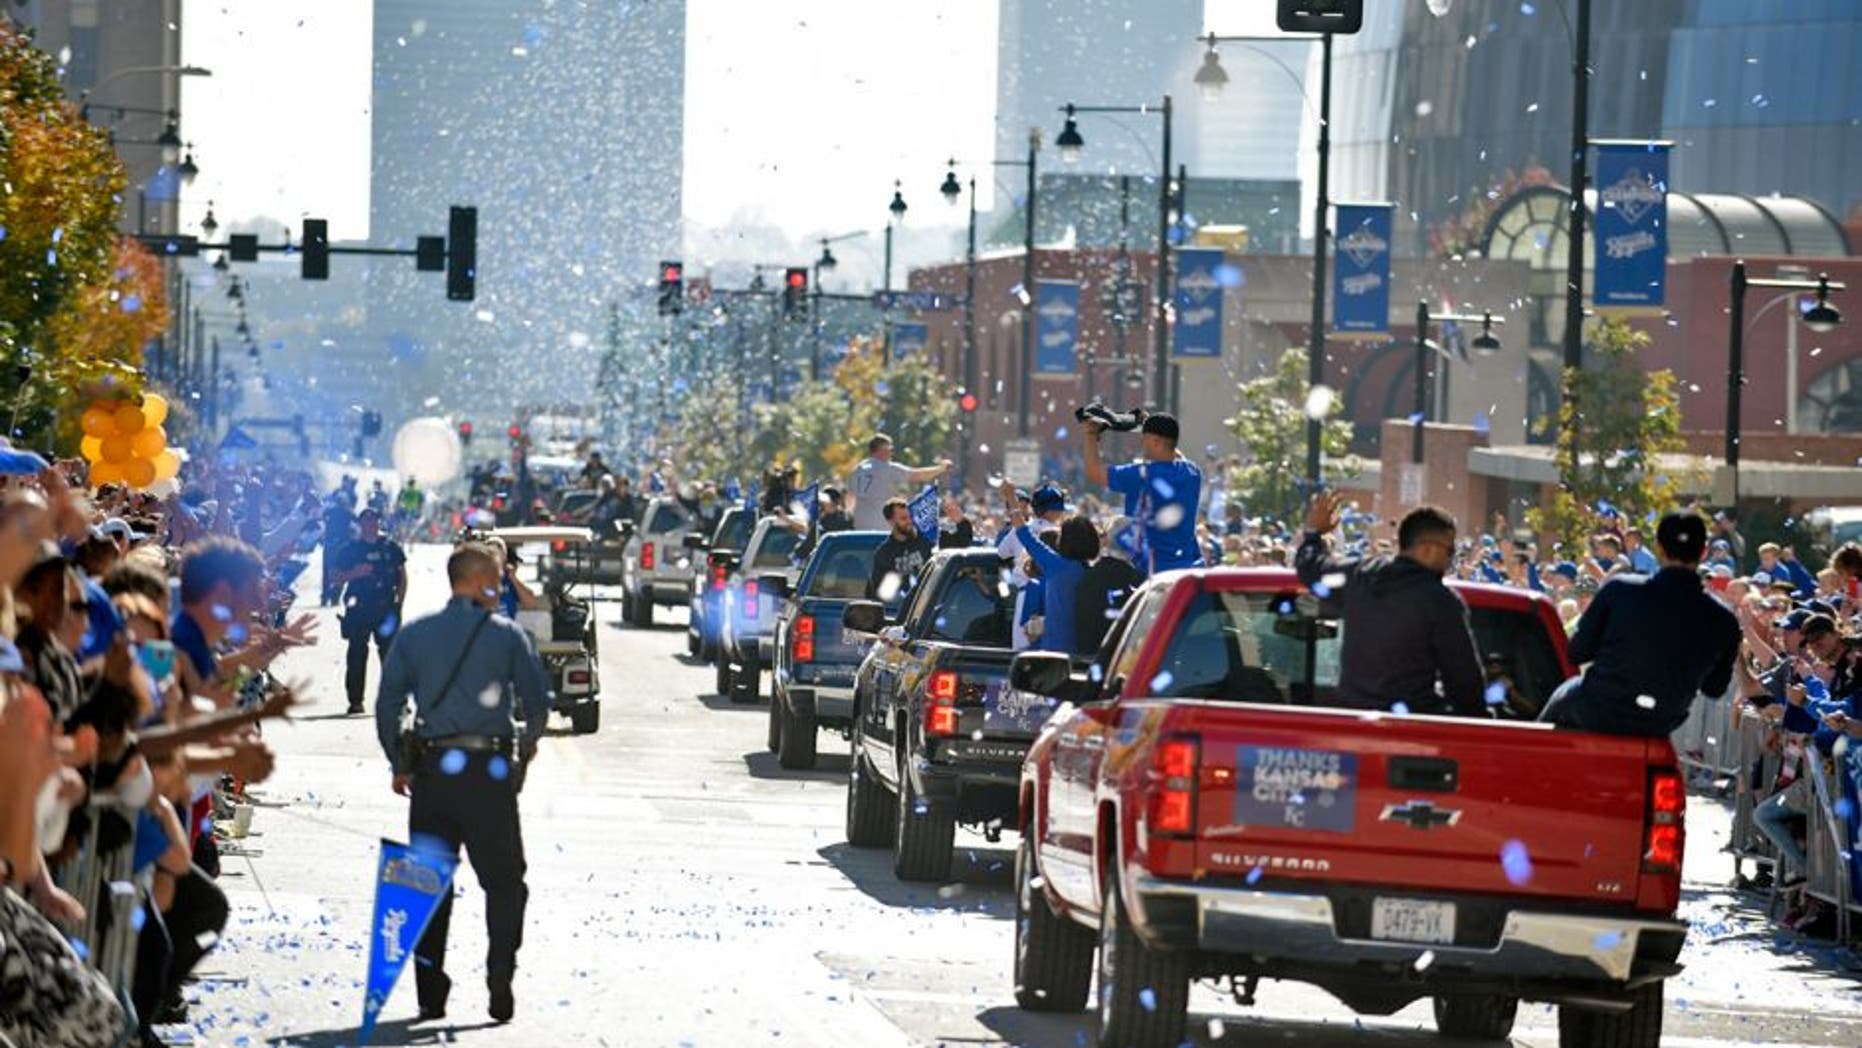 KANSAS CITY, MO -NOVEMBER 3: Members of the Kansas City Royals make their way through the steers of downtown during a parade to celebrate their World Series victory on November 3, 2015 in Kansas City, Missouri. (Photo by Ed Zurga/Getty Images)